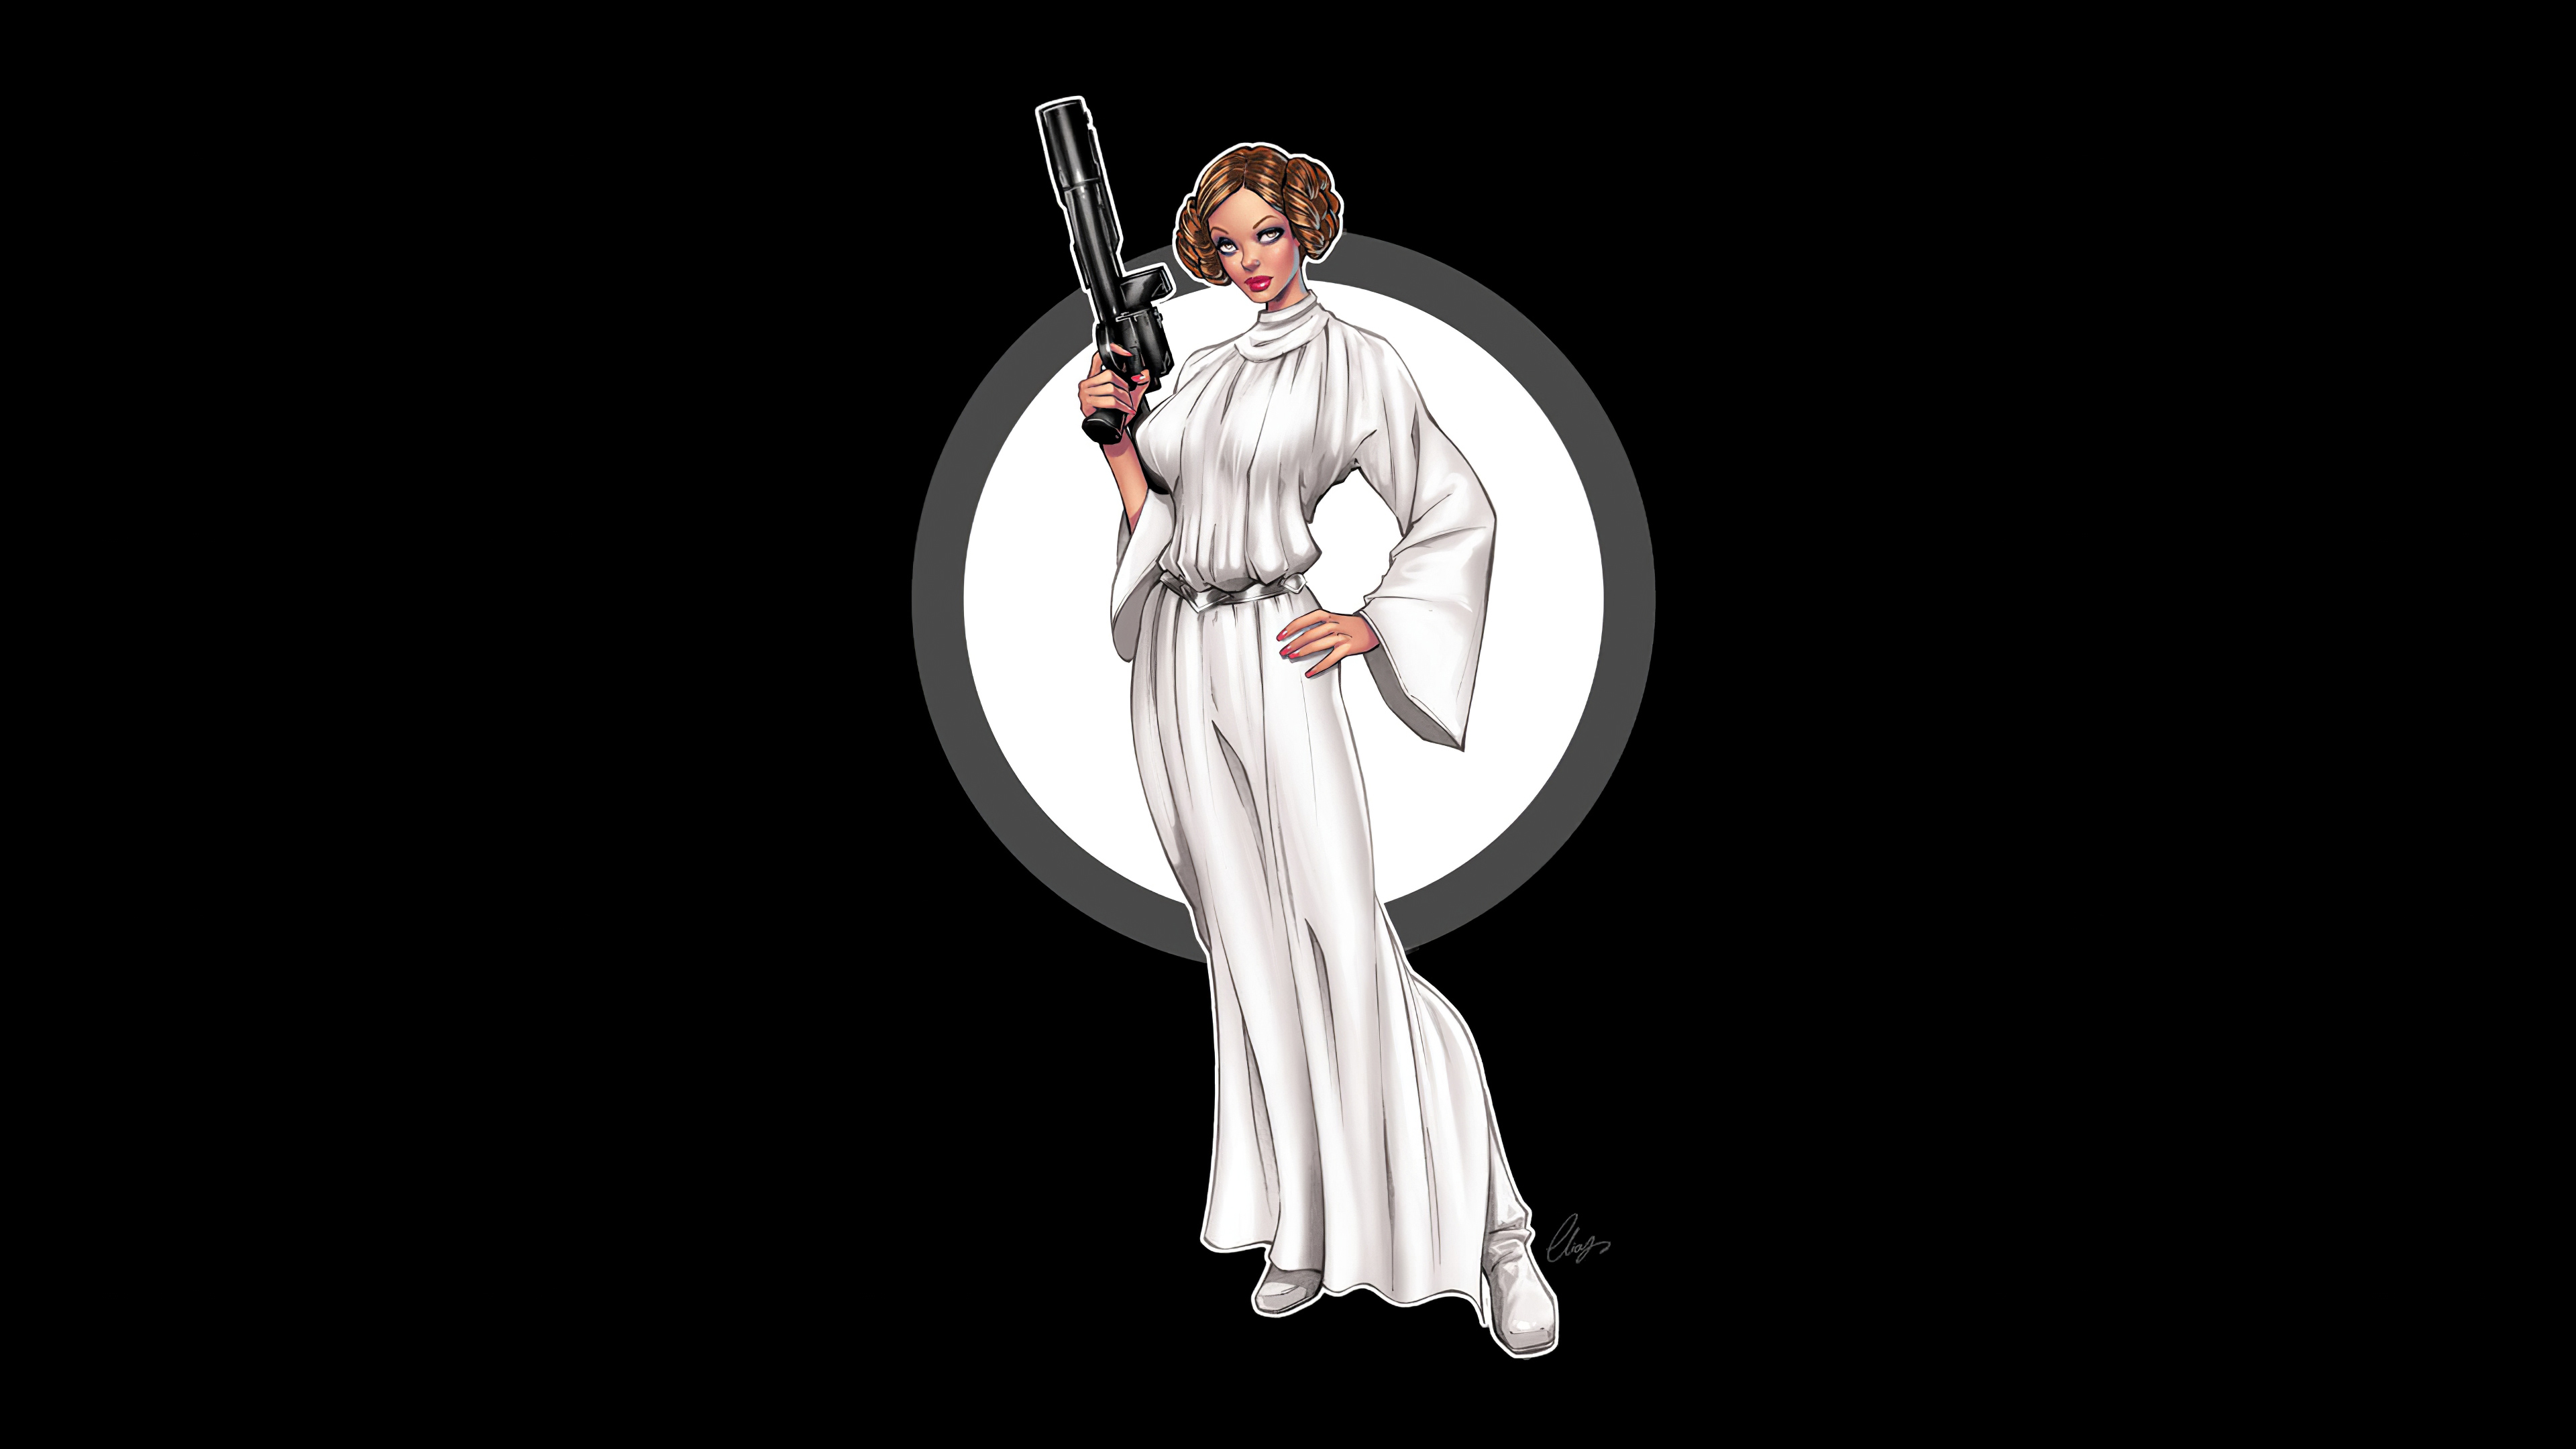 Princess Leia Minimal 4k Hd Movies 4k Wallpapers Images Backgrounds Photos And Pictures